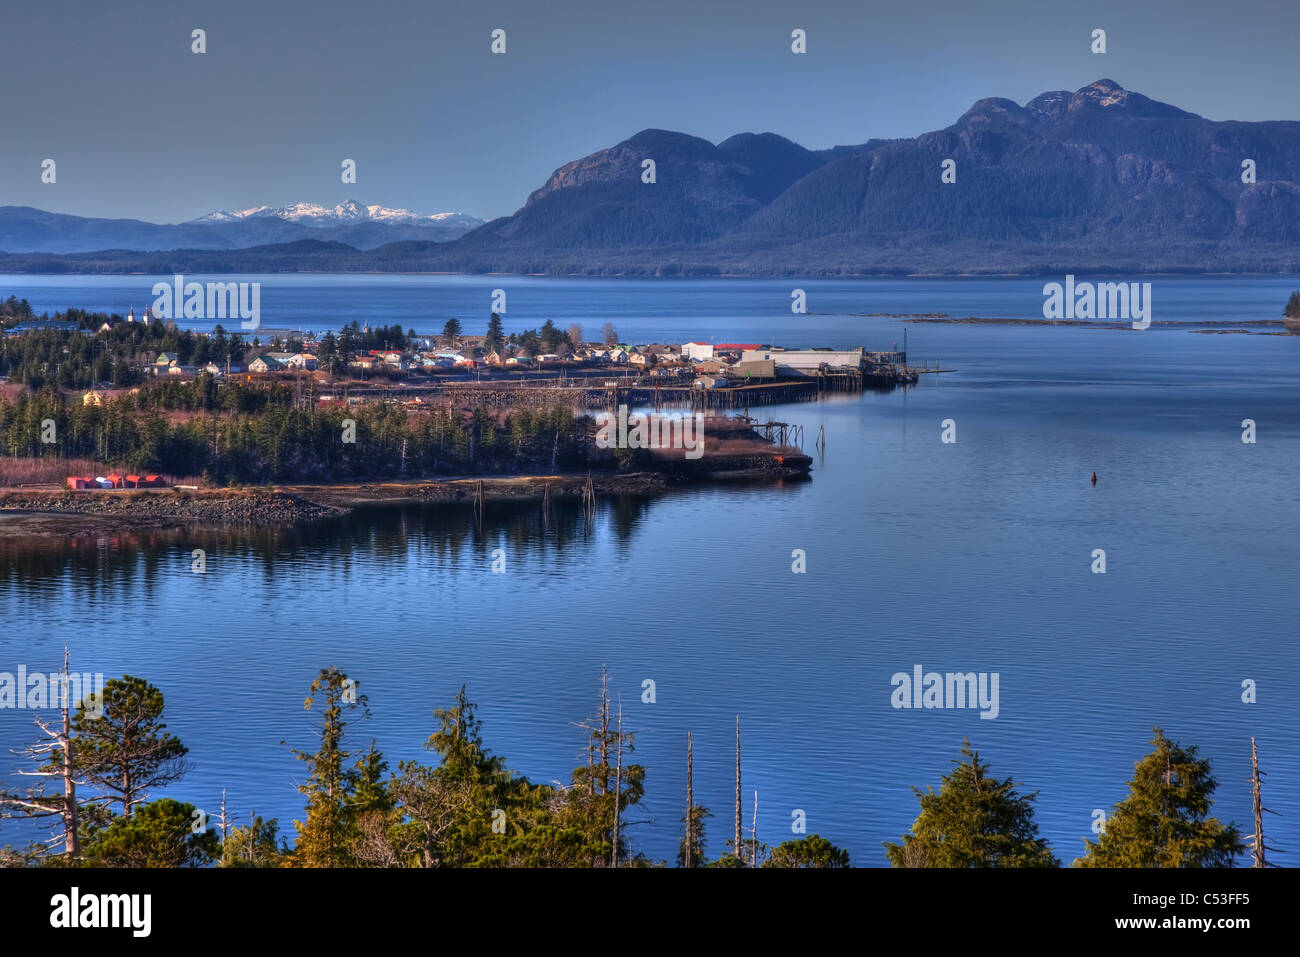 View of Metlakatla, Annette Island, and surrounding coastal area, Inside Passage, Southeast Alaska, Spring. HDR - Stock Image